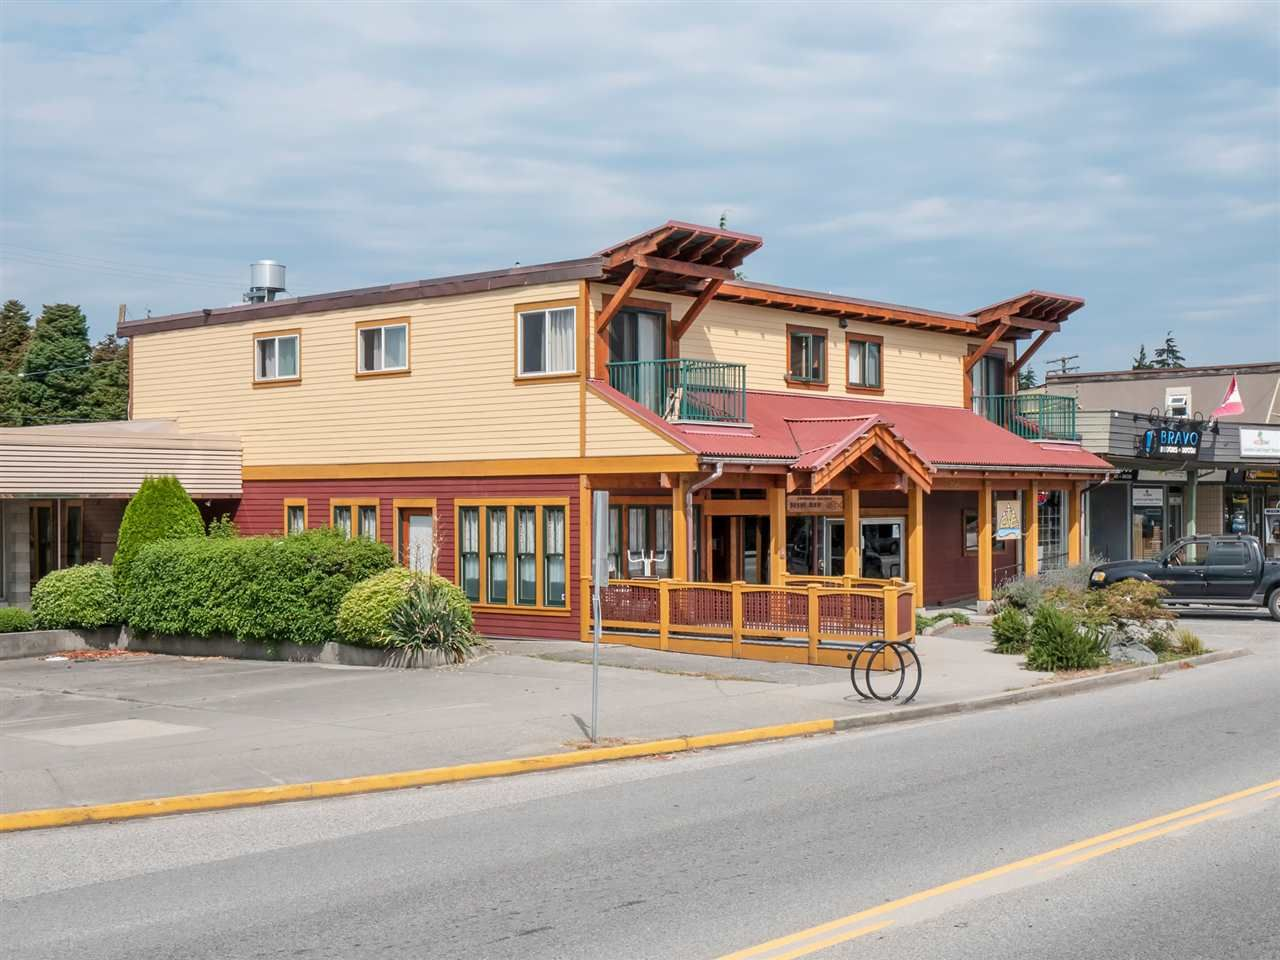 Main Photo: 5517 WHARF Avenue in Sechelt: Sechelt District Multi-Family Commercial for sale (Sunshine Coast)  : MLS®# C8036407